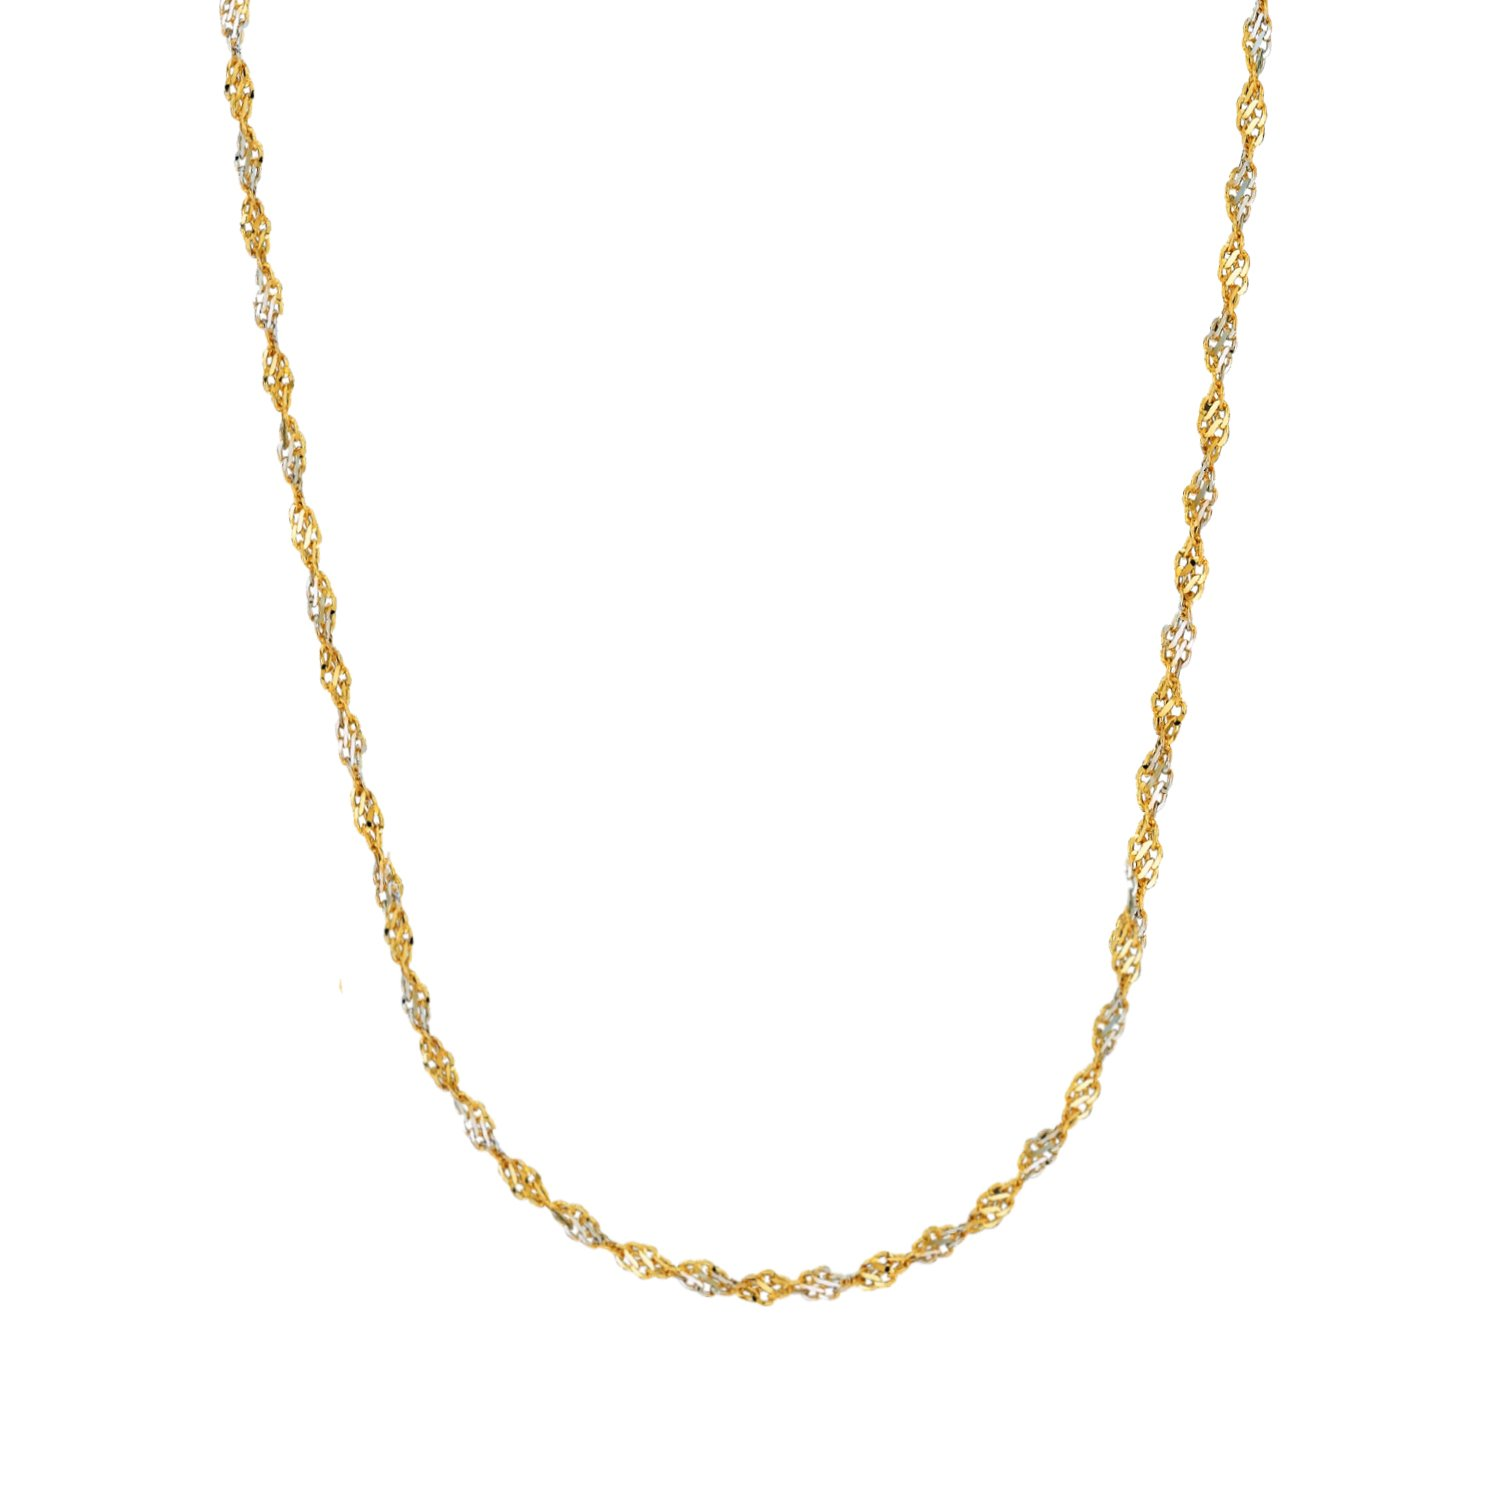 14k Gold Yellow and White Two Tone Singapore Chain Necklace 1.35 mm Ritastephens